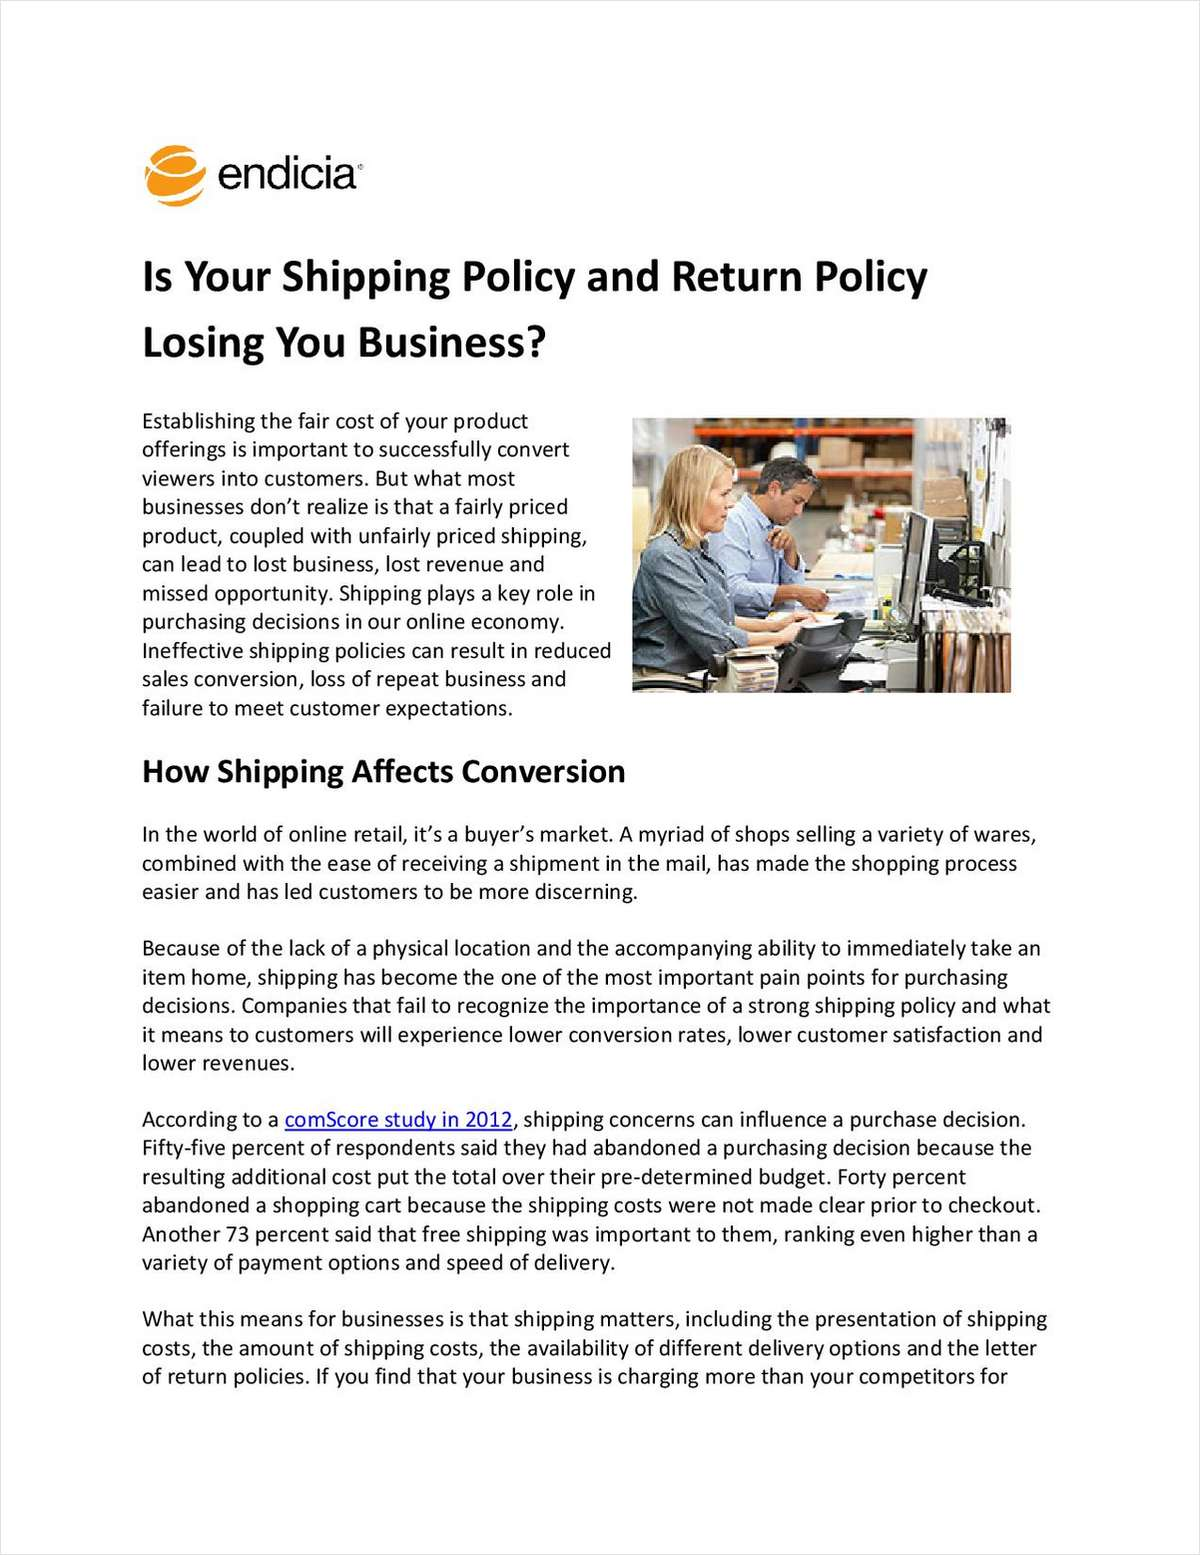 Is Your Shipping and Return Policy Losing You Business?